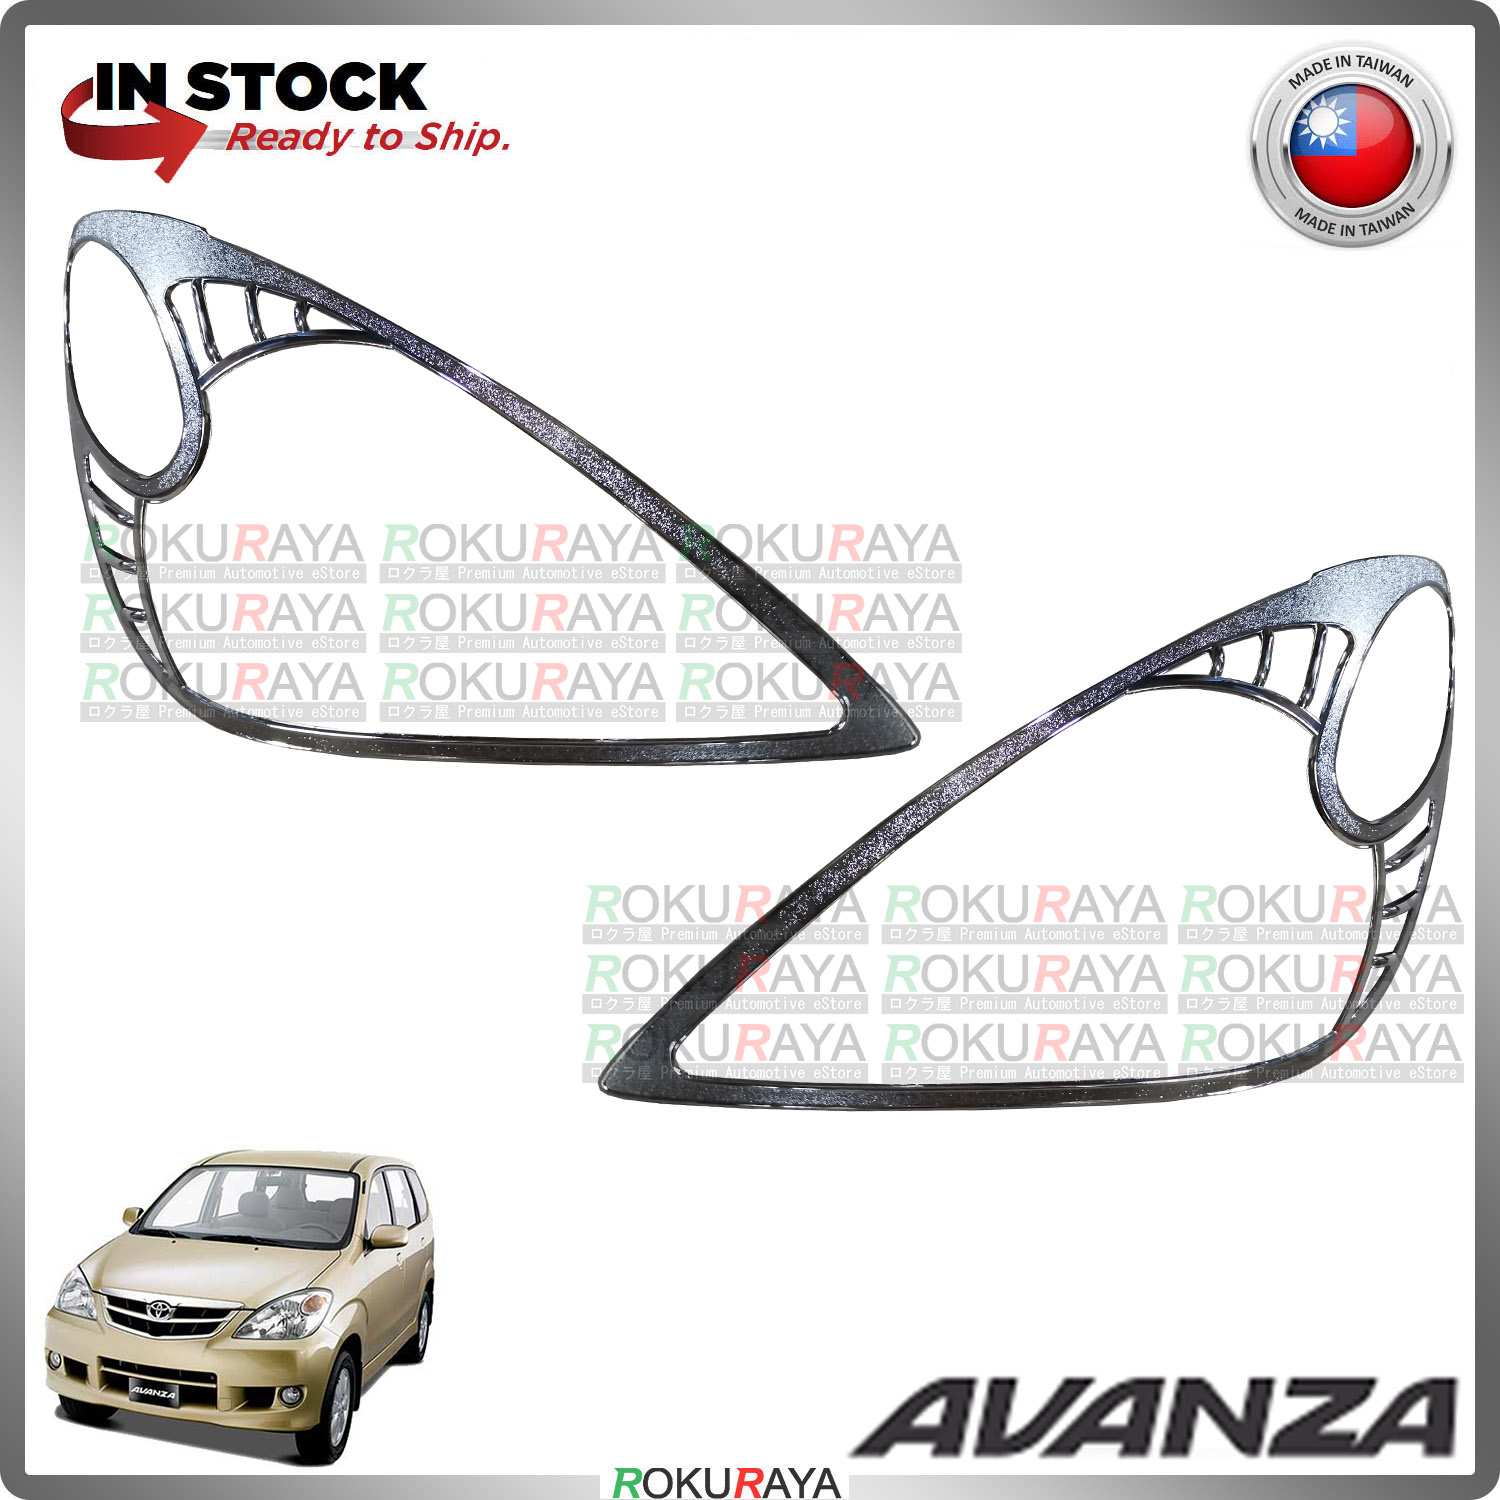 [CHROME] Toyota Avanza Old 2003-2011 ABS Plastic Front Head Lamp Garnish Moulding Cover Trim Car Accessories Parts